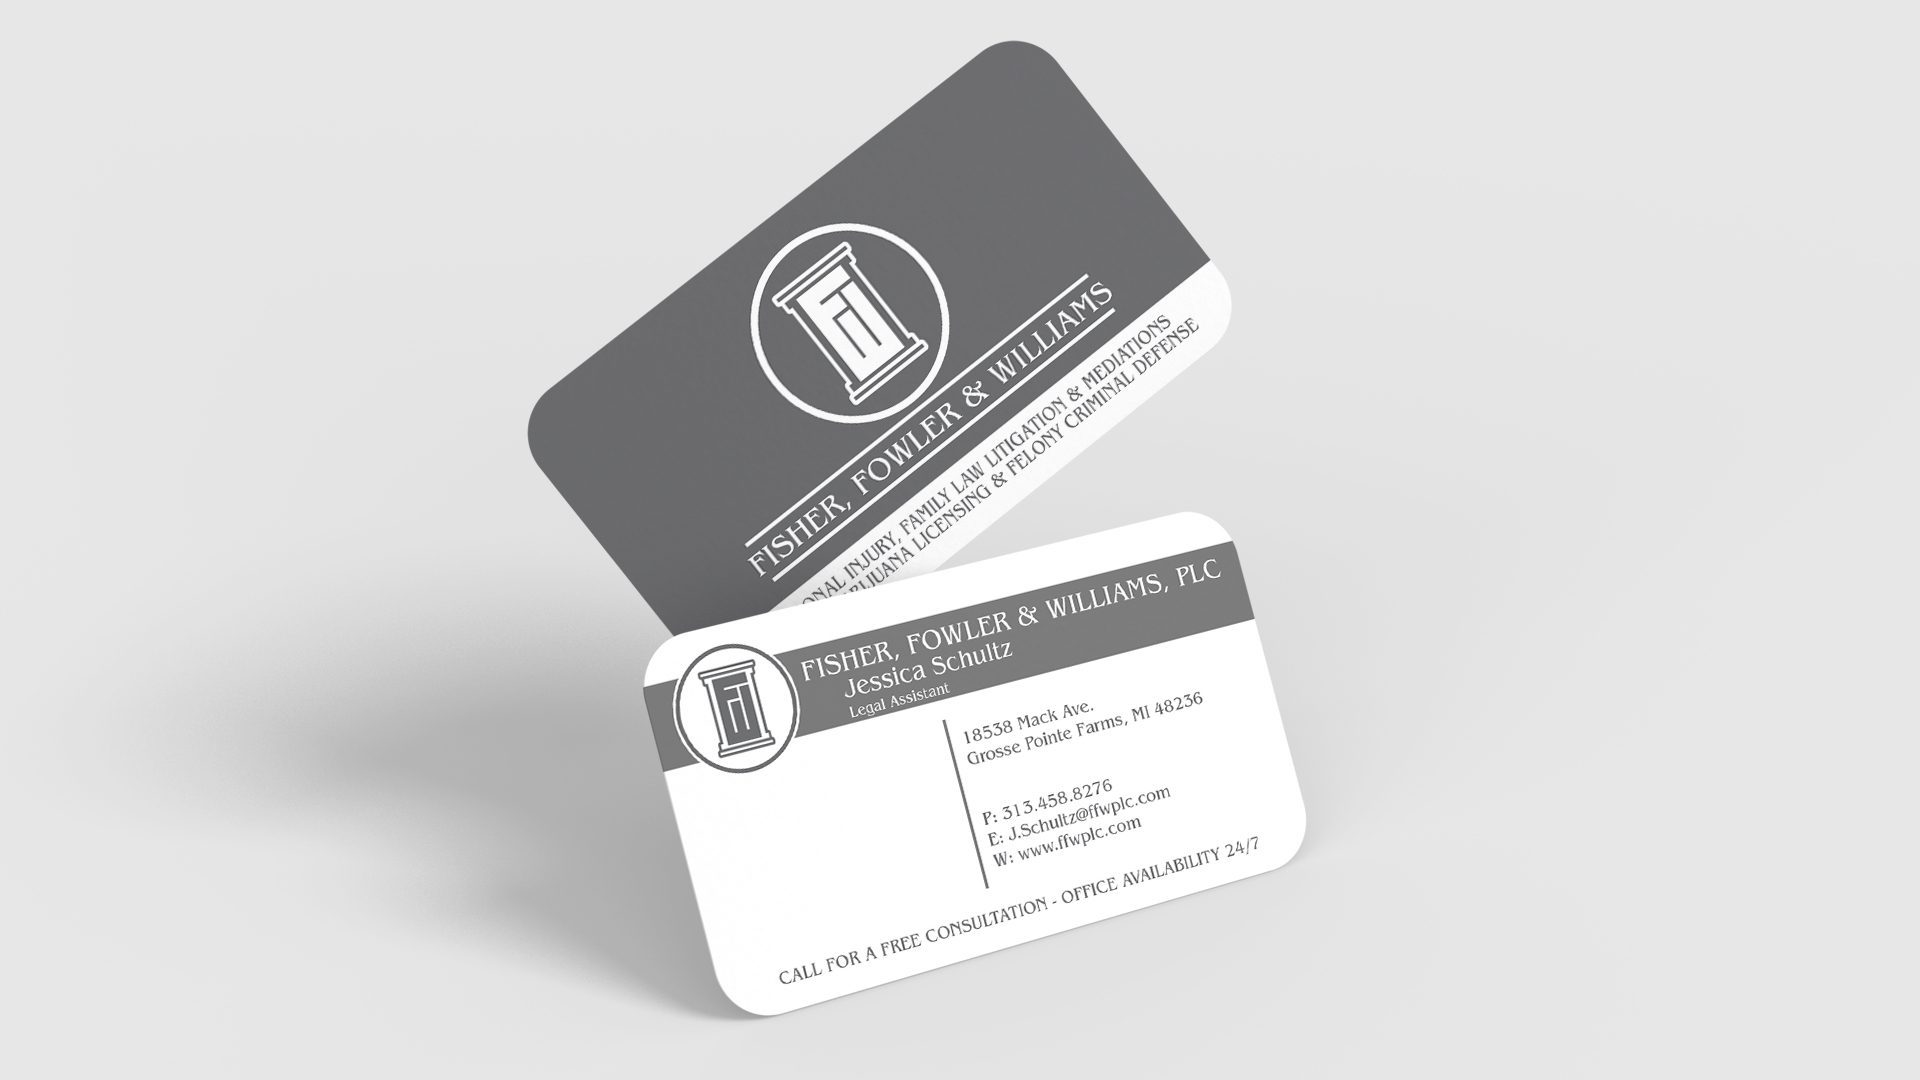 Fowler and Williams – Matte Business Card with Rounded Corners Mockup 04